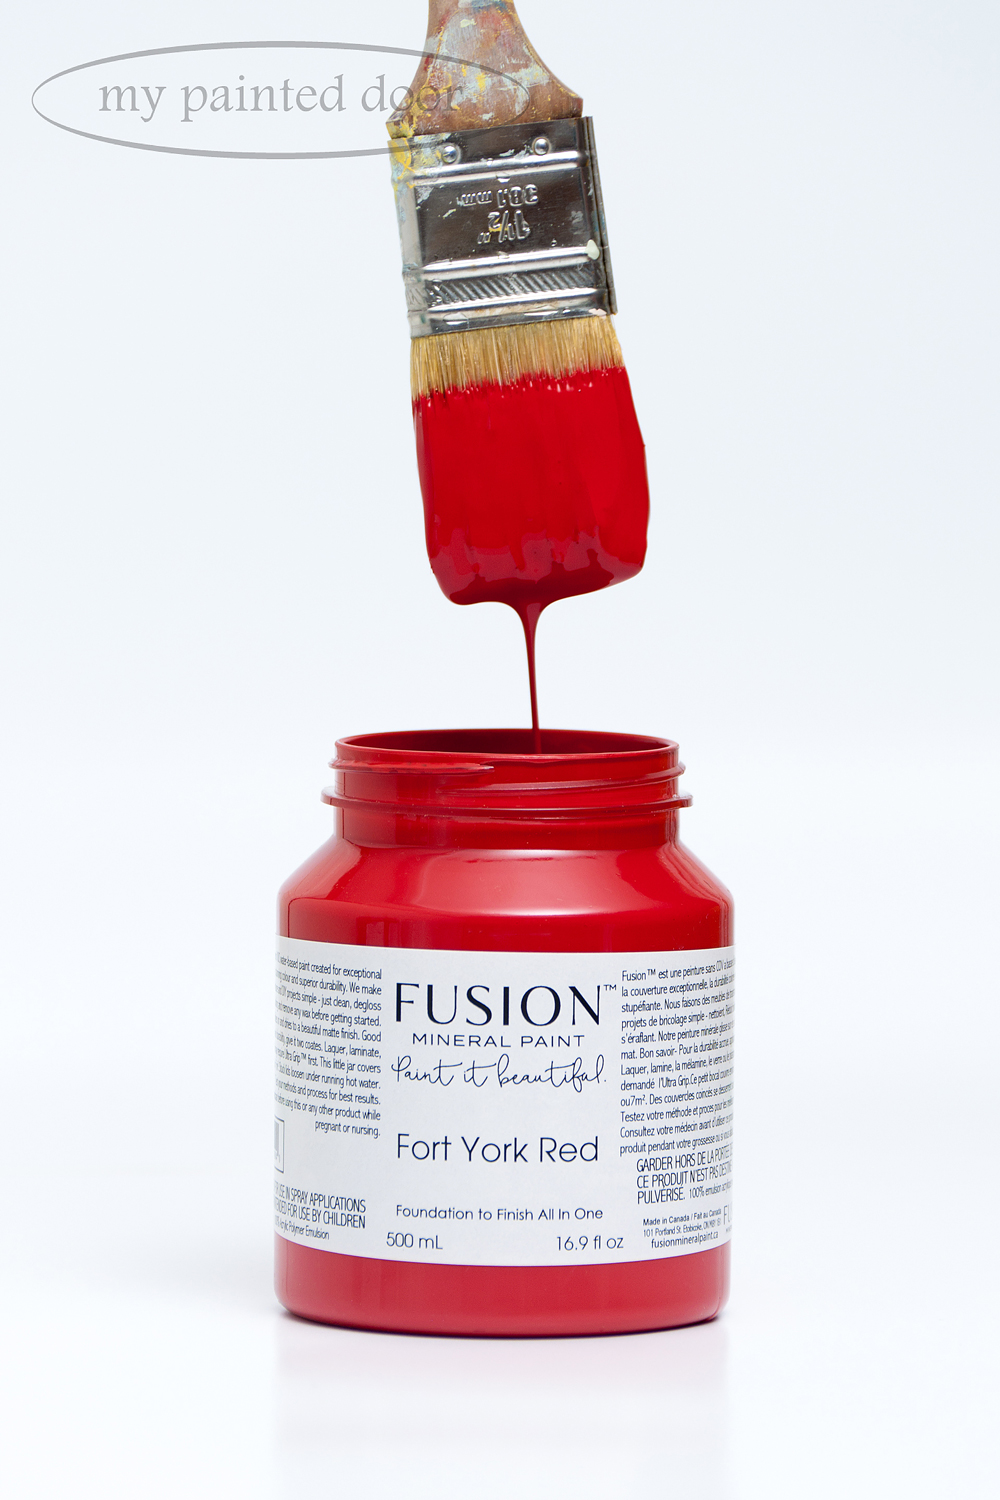 Fusion Mineral Paint available at My Painted Door.